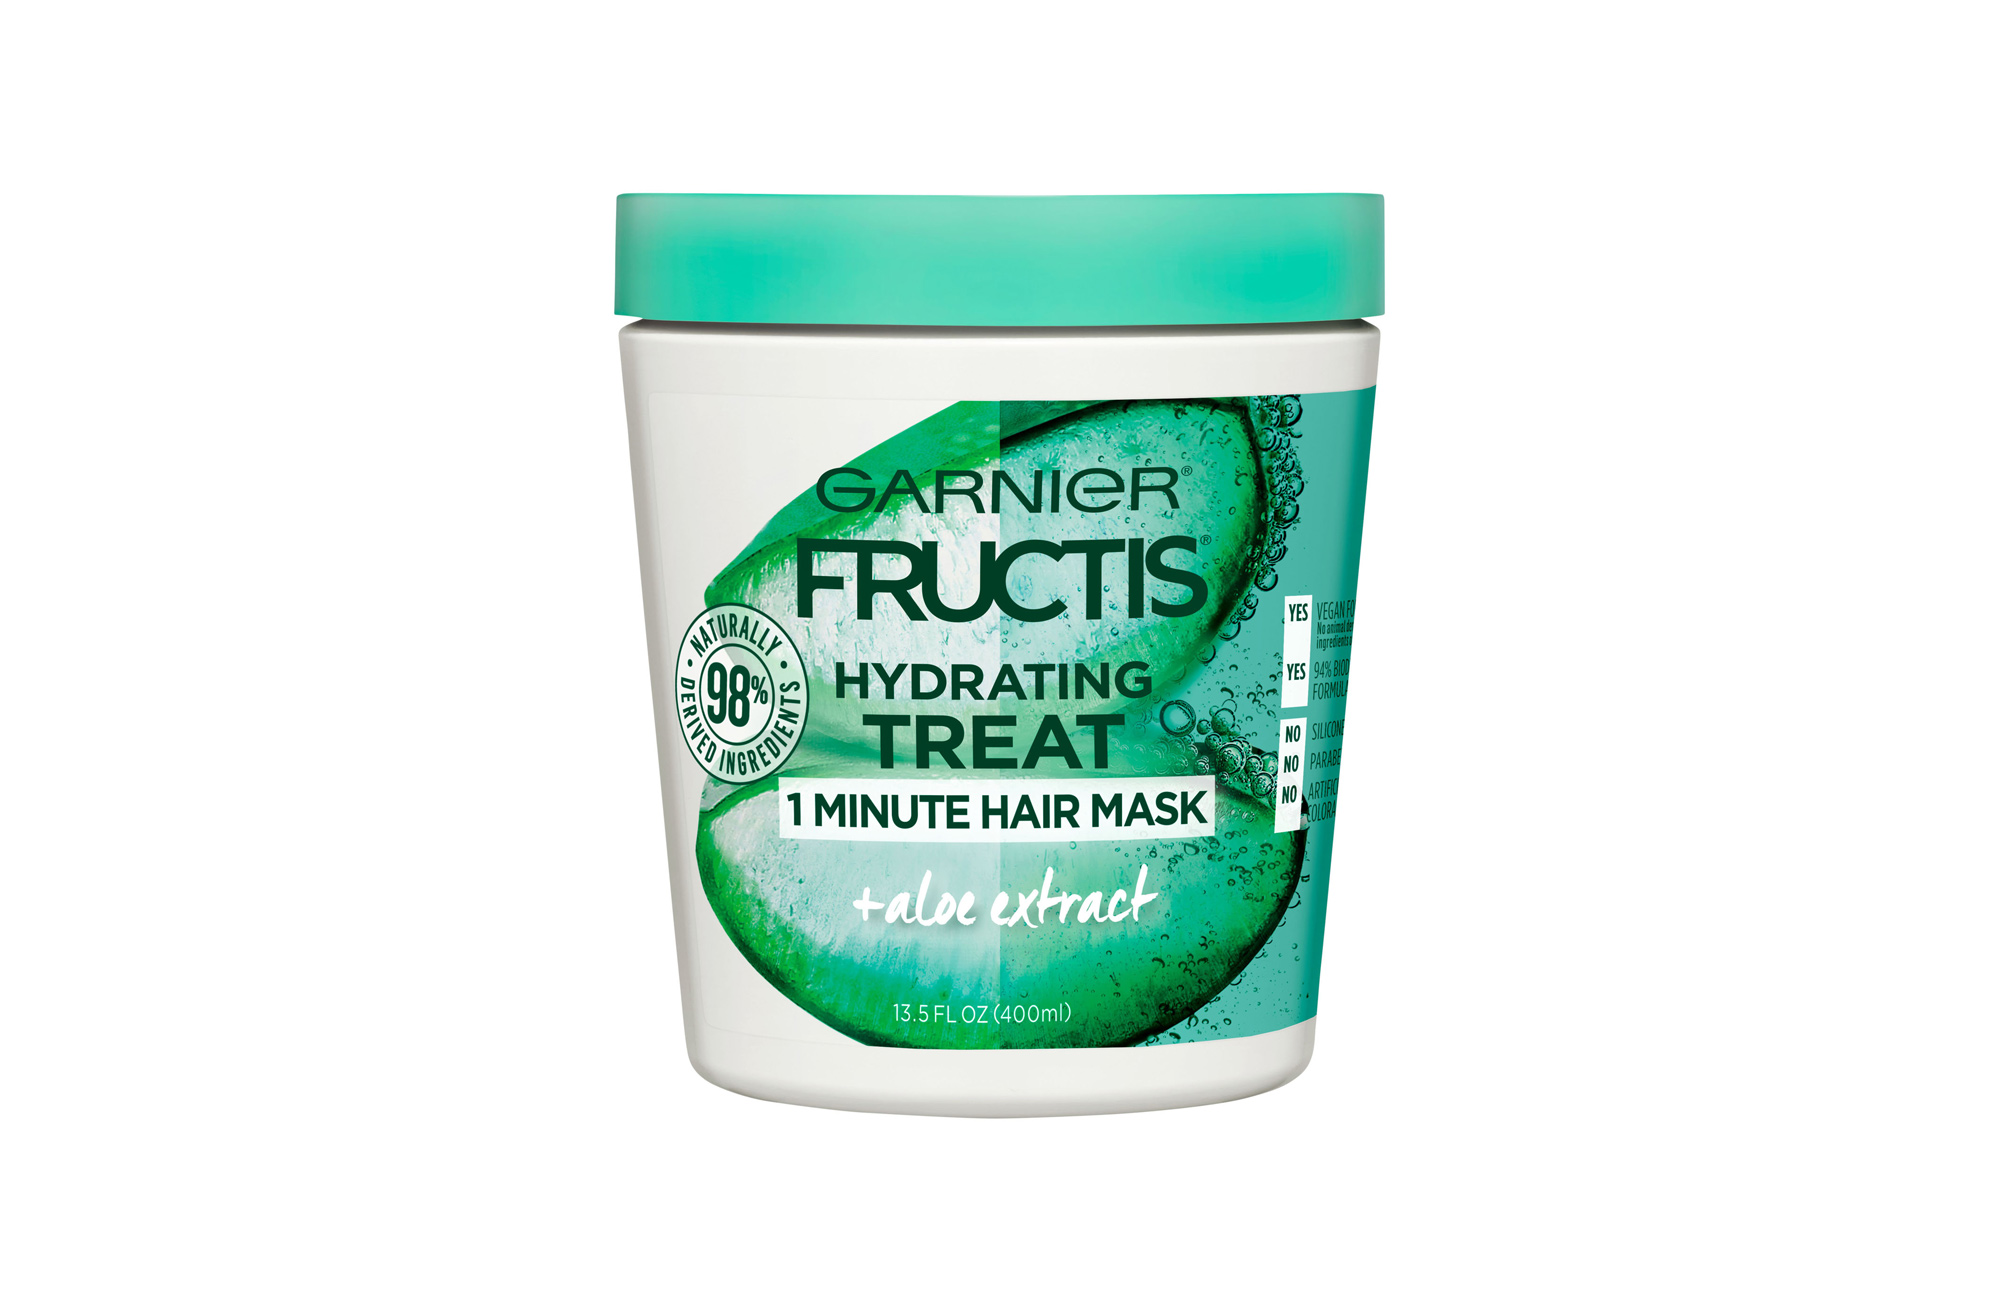 Garnier Fructis 1 Minute Hair Mask + Aloe Extract